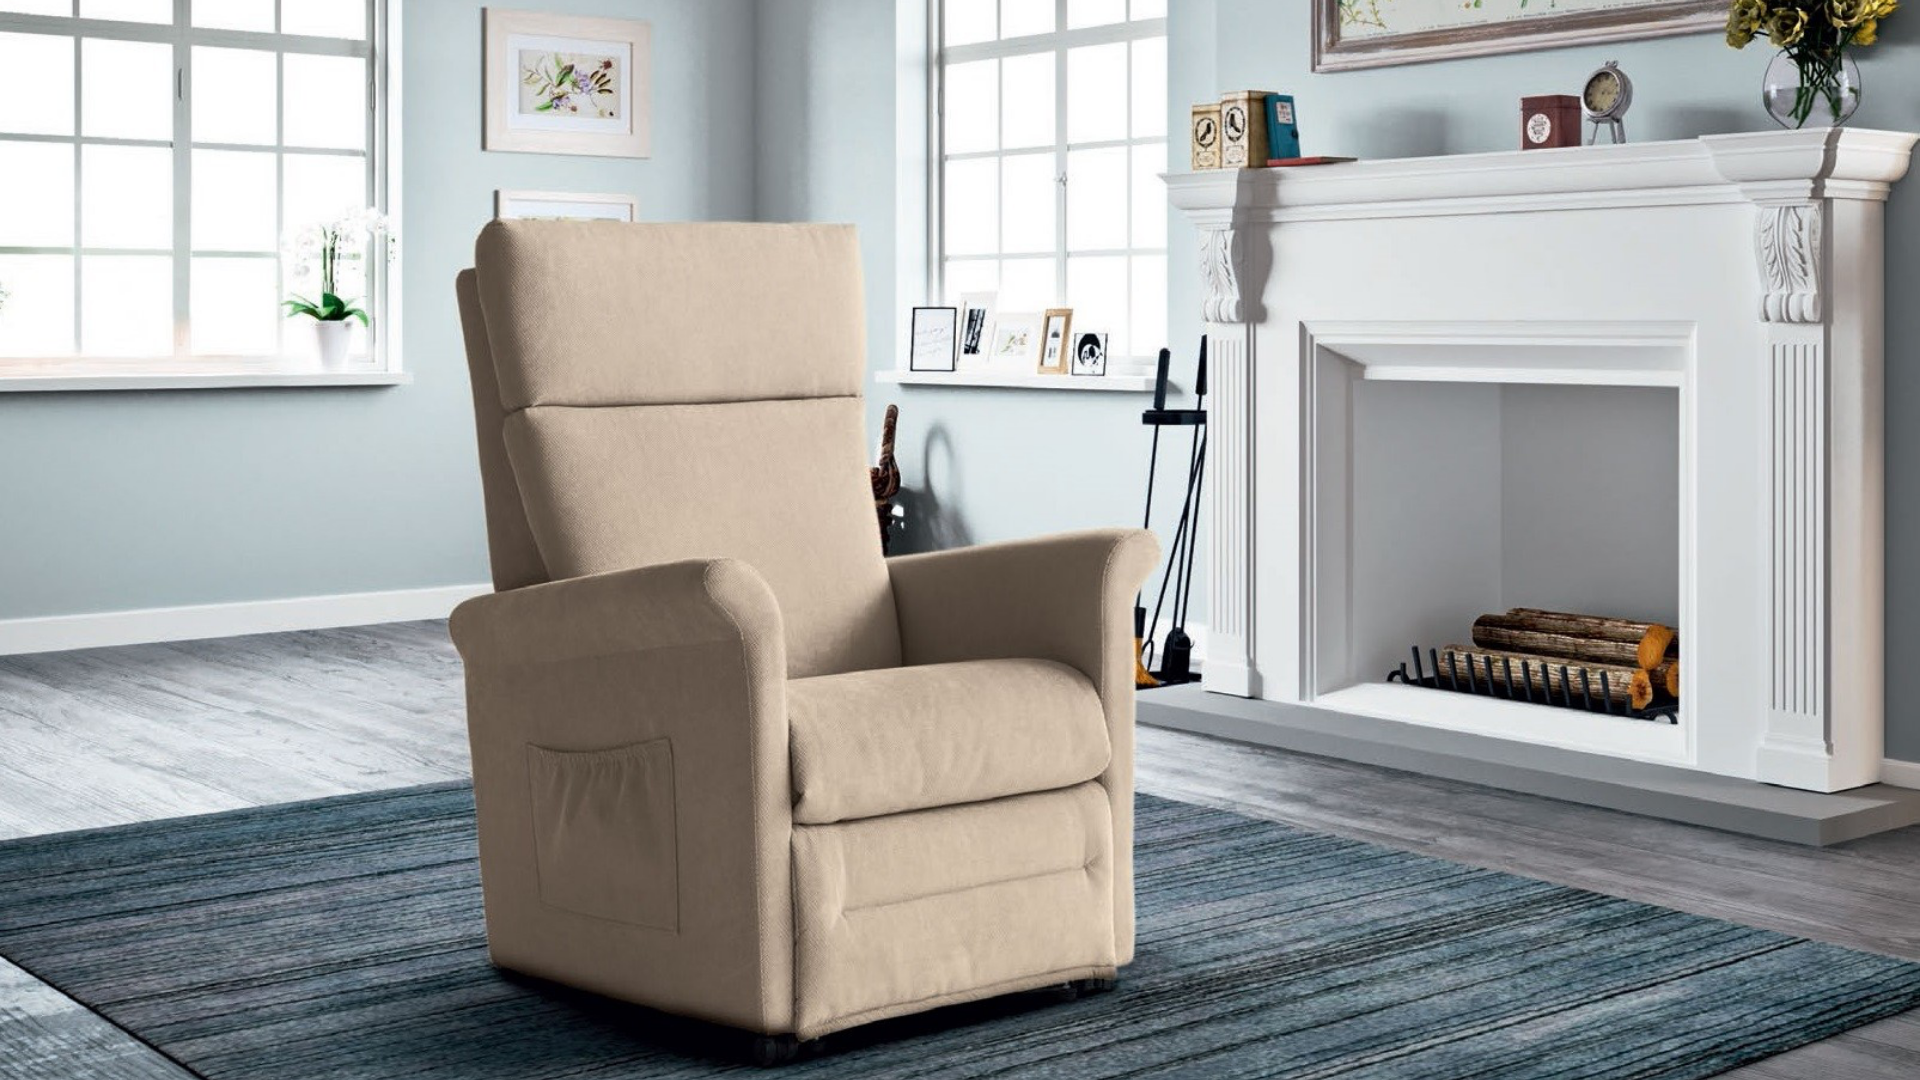 Recliners and Relax Armchairs